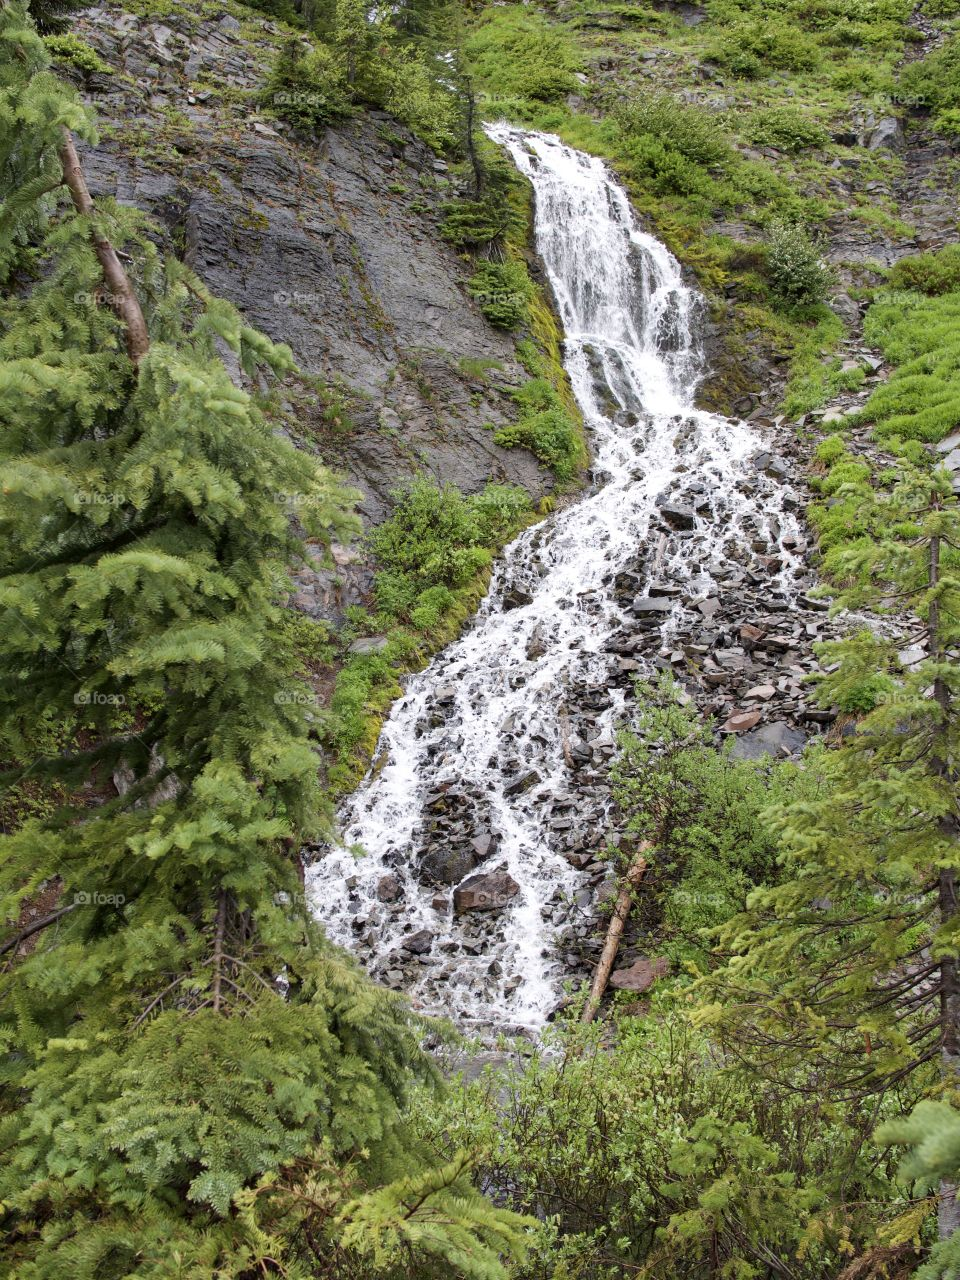 The cold waters of Vadea Falls in Crater Lake National Park look like lightening forking down the mountainside.